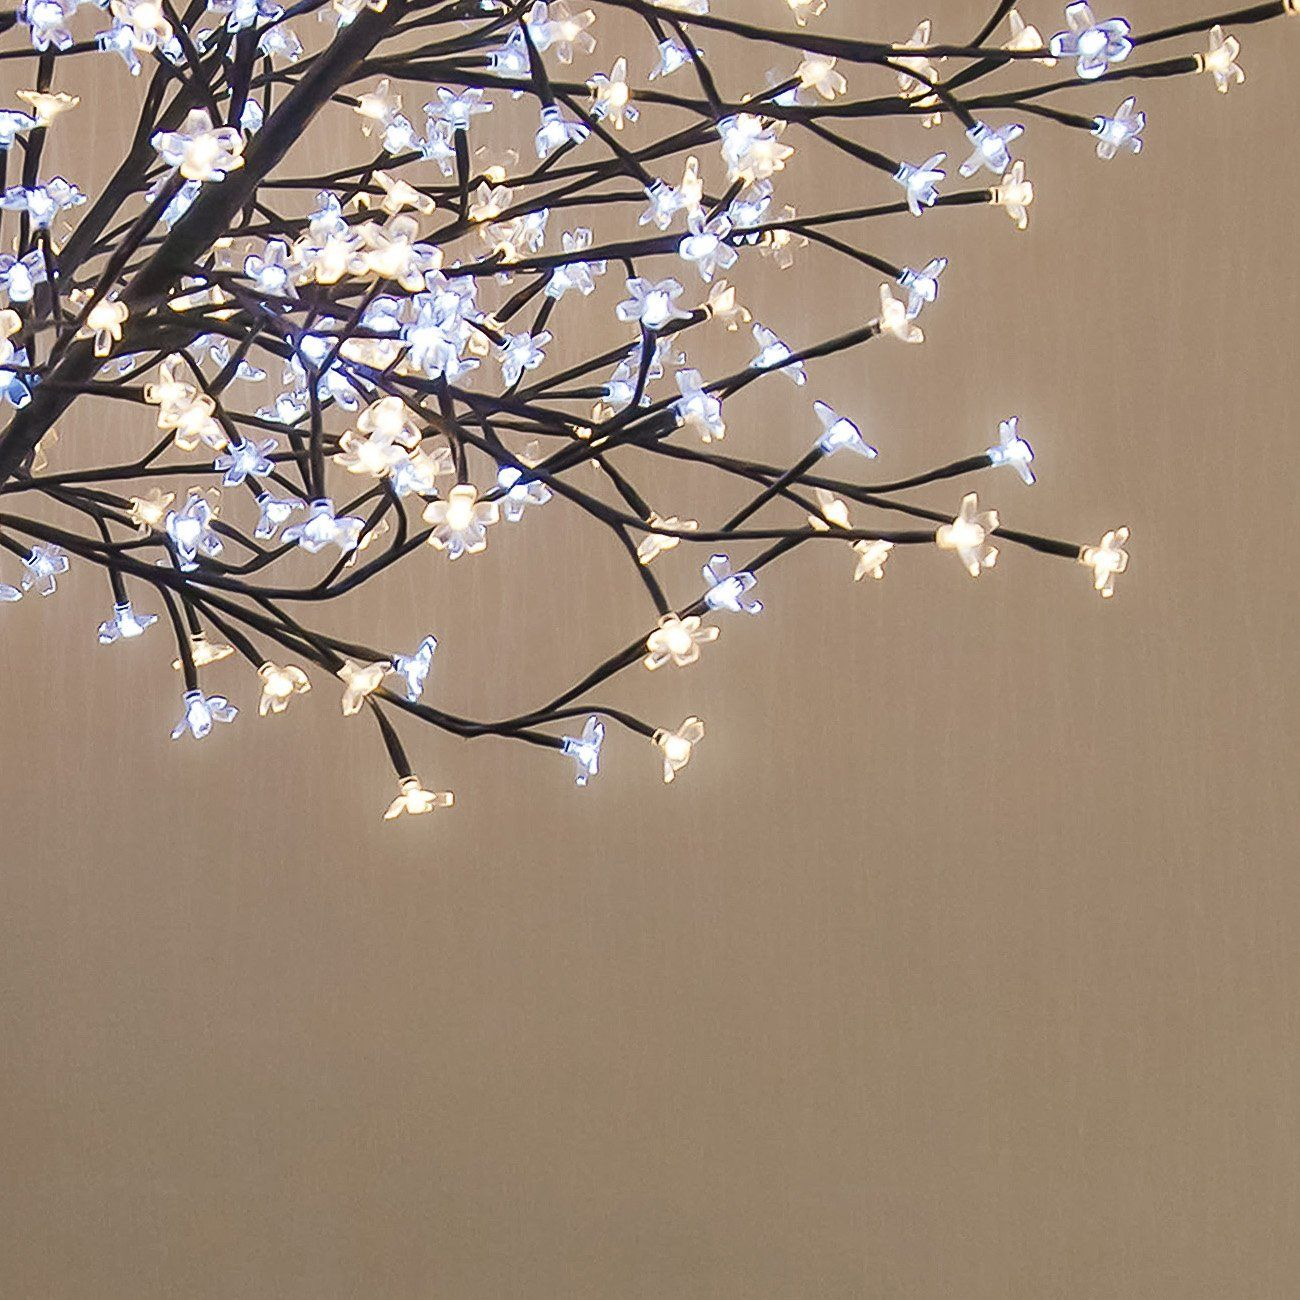 Benefitusa 8ft 600 Led Light Cherry Blossom Flower Tree Decoration Warm White And White You Can Get Cherry Blossom Flowers Flower Decorations Tree Lighting